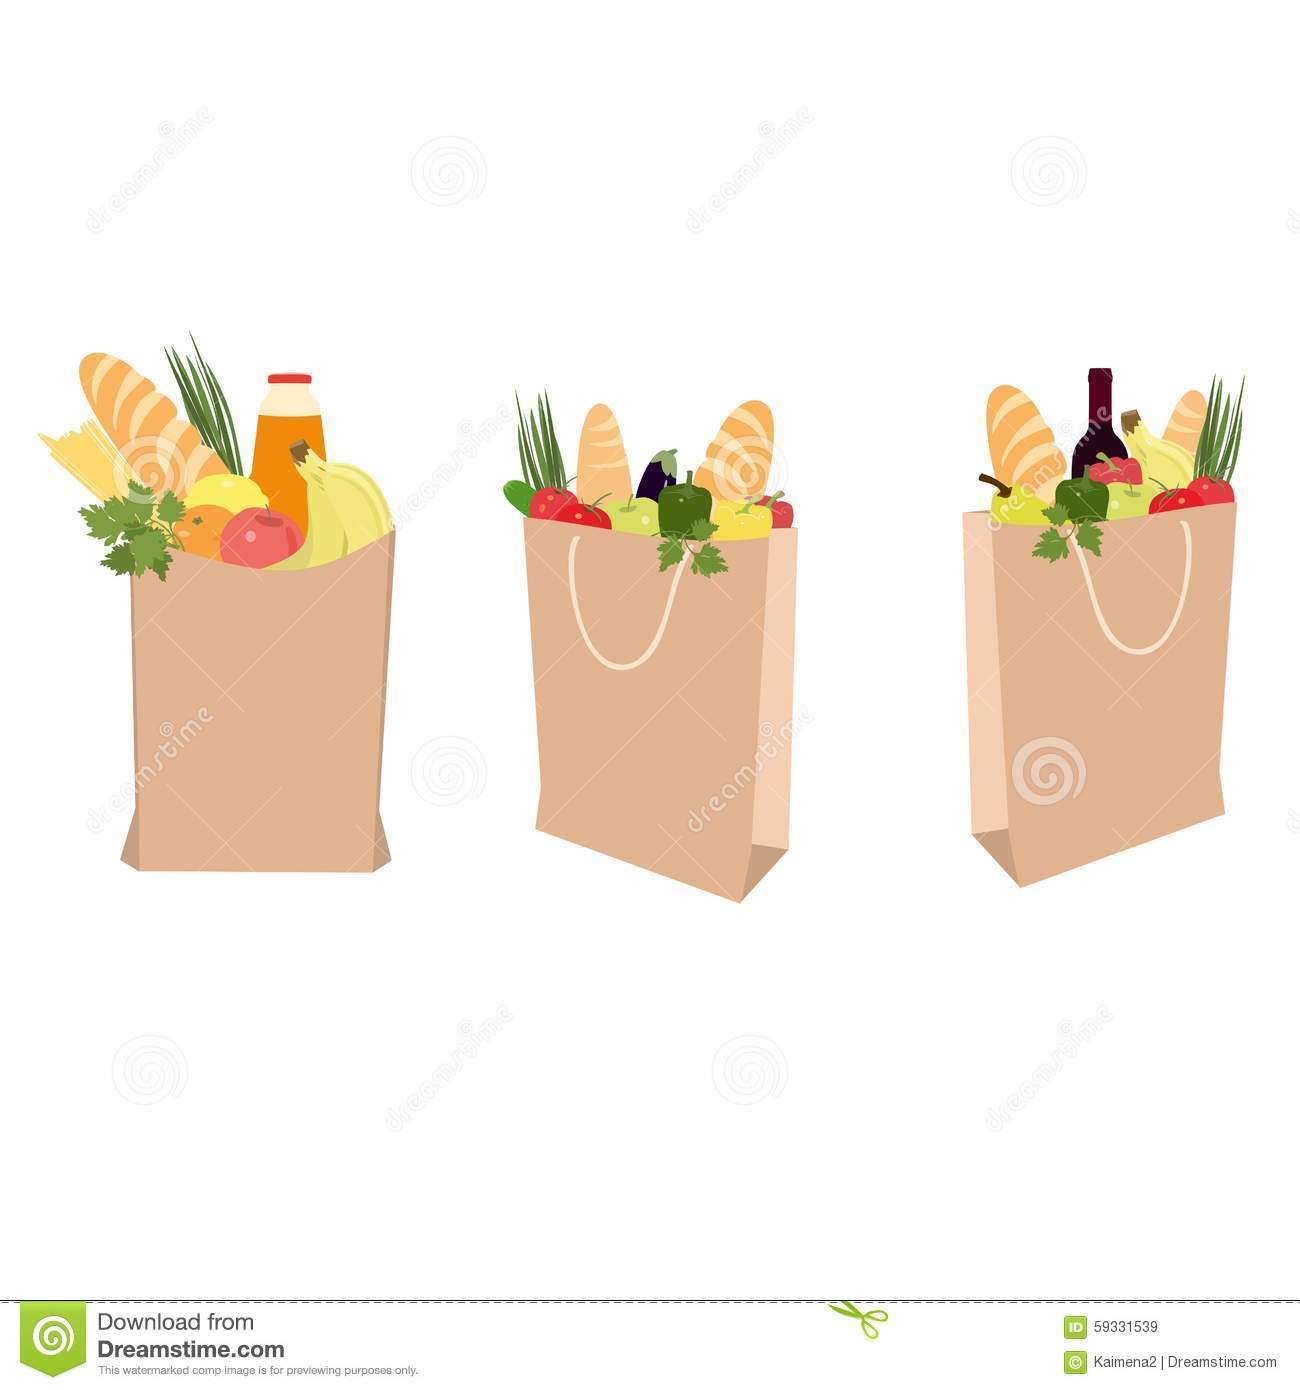 Fruits, Vegetables, Bread, Bottled Beverages, And Wine In Brown.